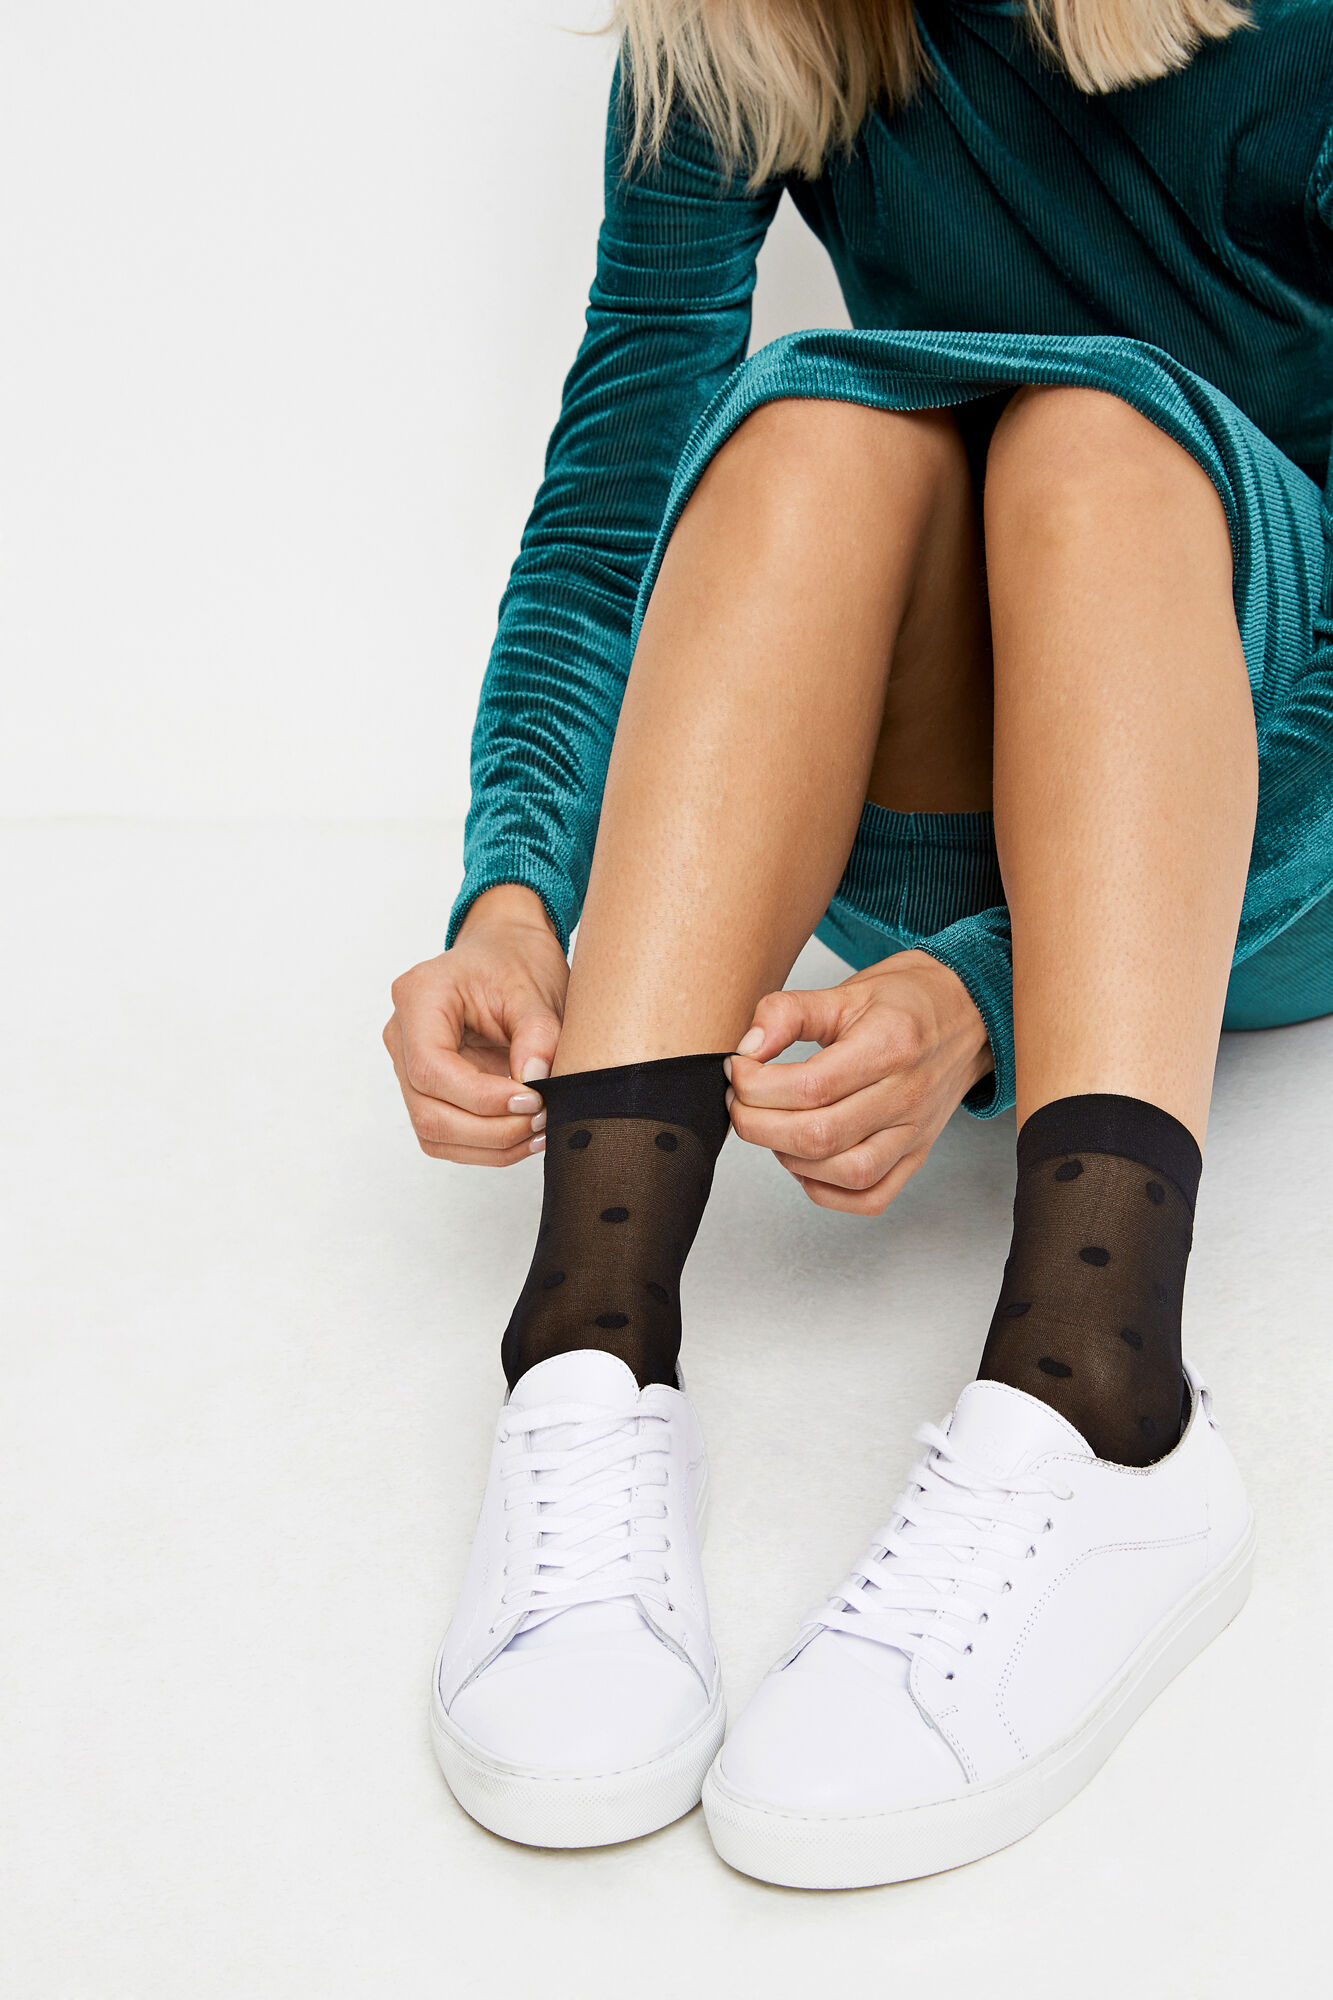 ENLIBBY DOTTED SOCKS 5611, BLACK W. DOTS